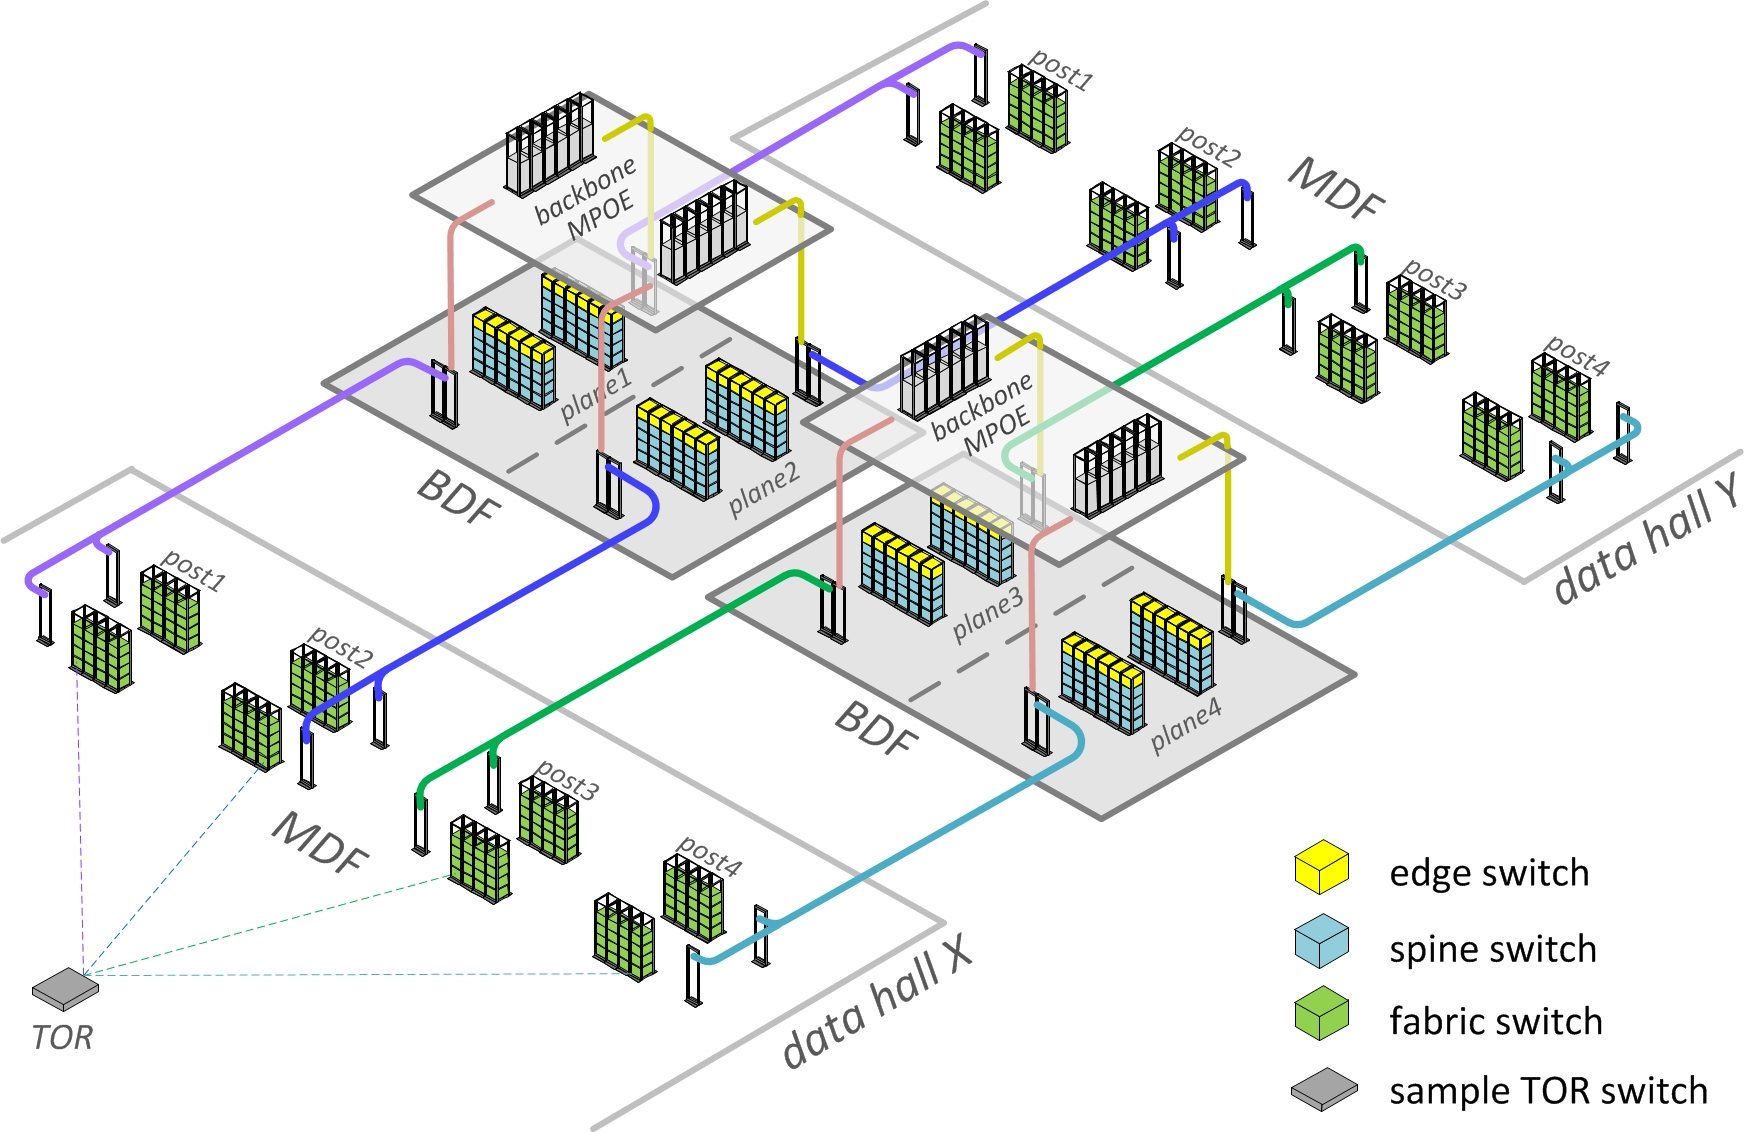 Introducing Data Center Fabric The Next Generation Facebook Tda8160 Pinout Schematic And Datasheet Figure 3 Optimized Datacenter Physical Topology